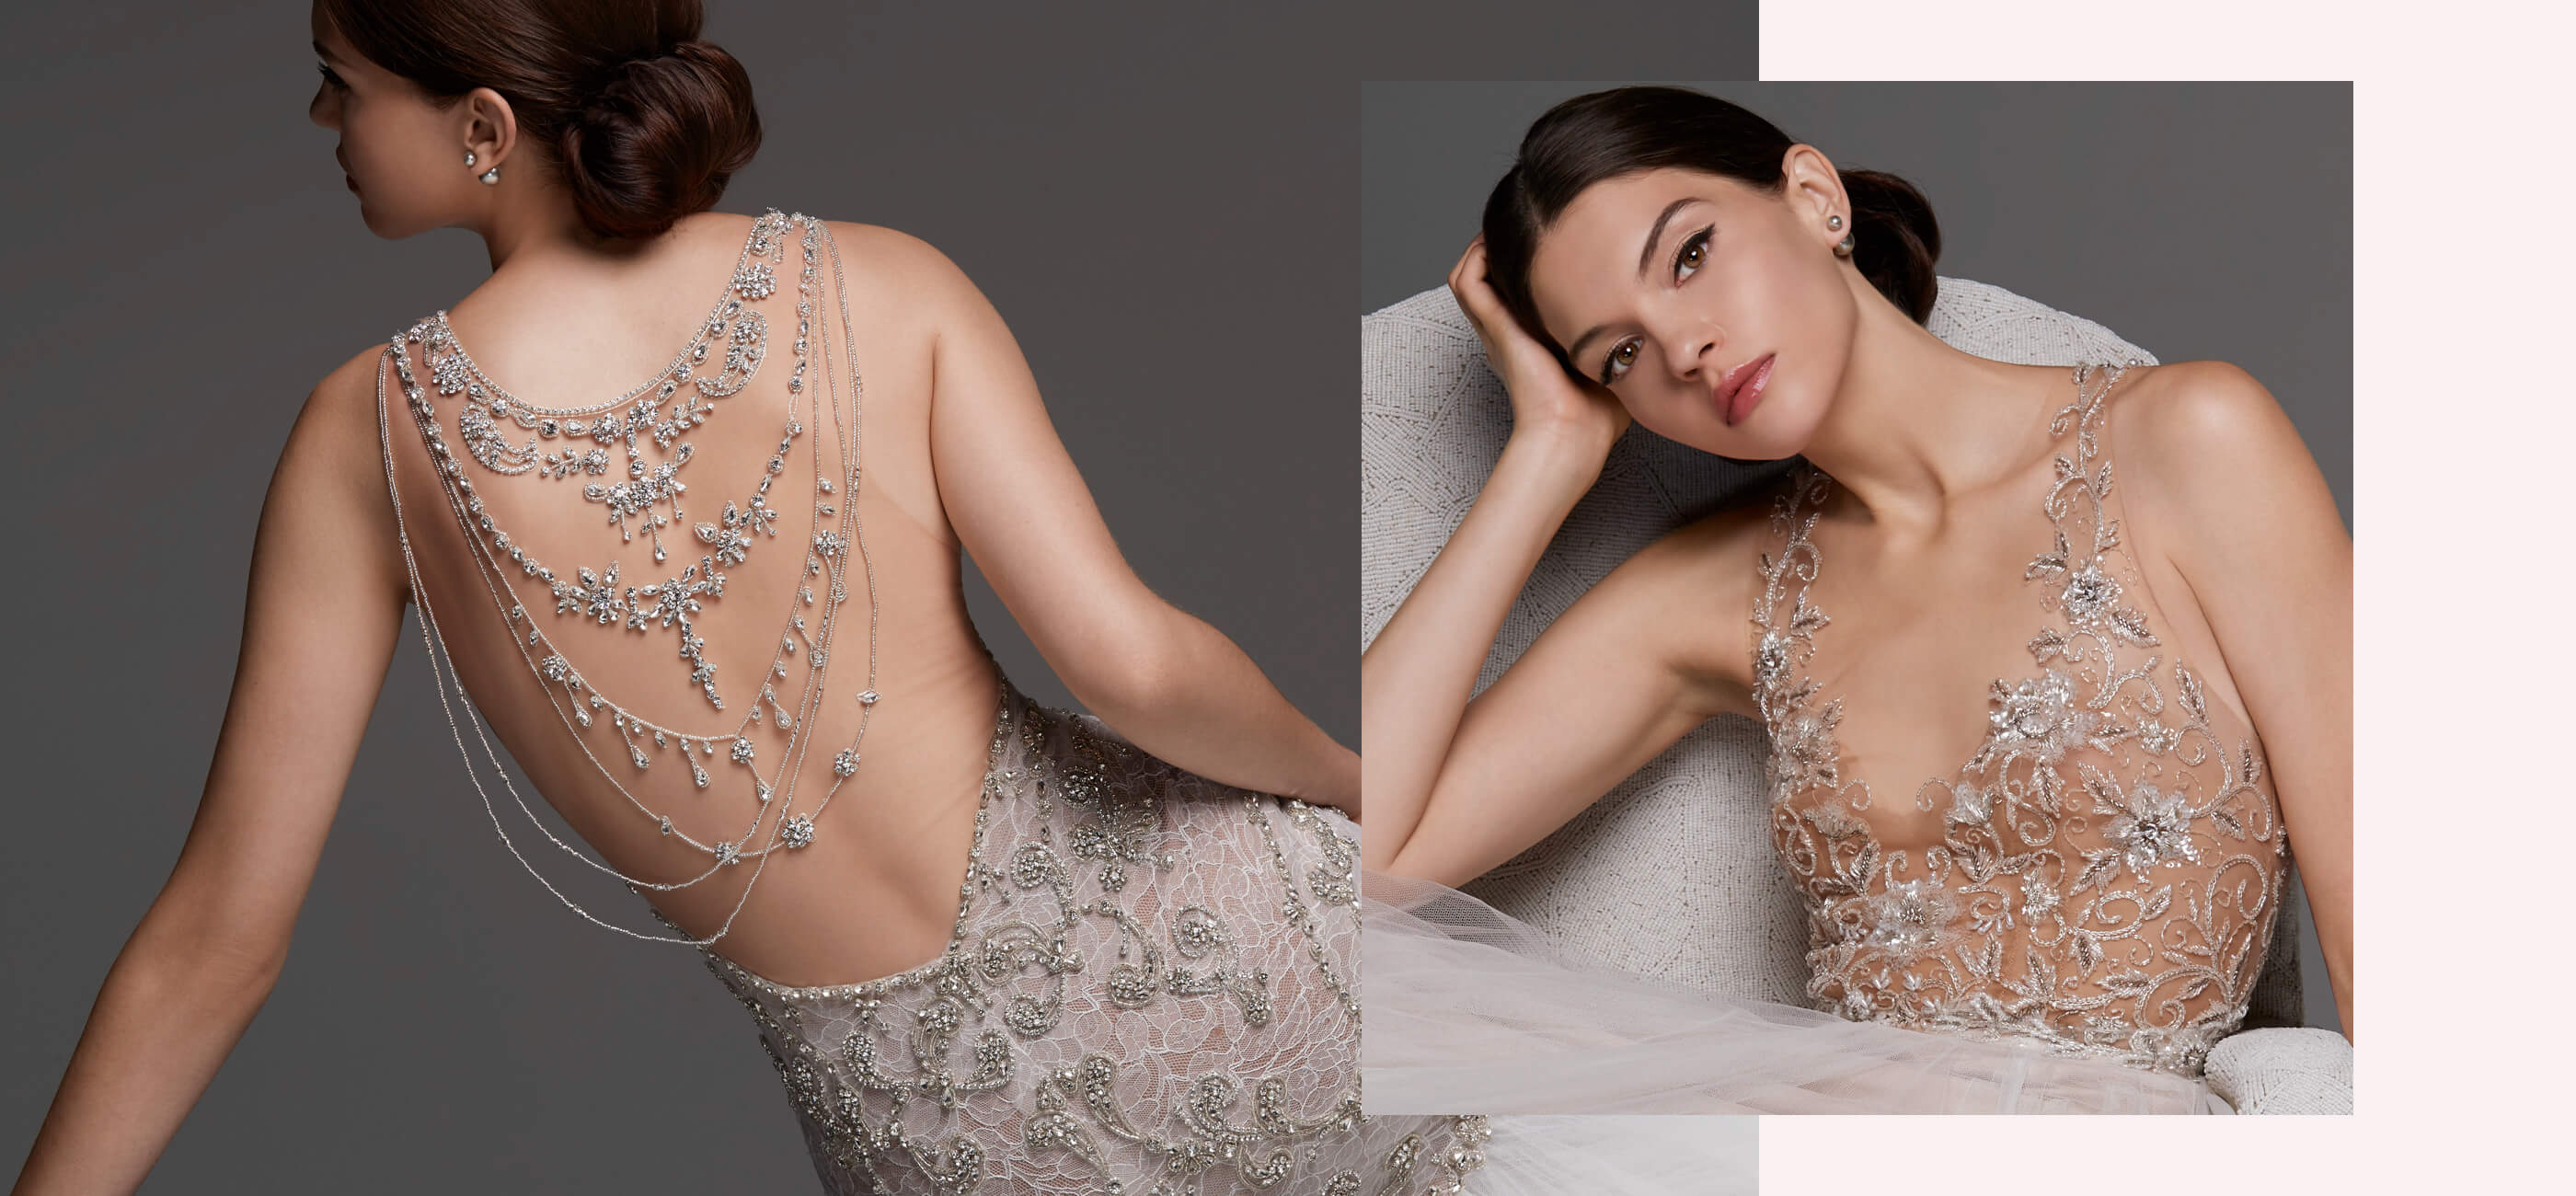 Model wearing a beaded detailed wedding gown displaying front and back of dress